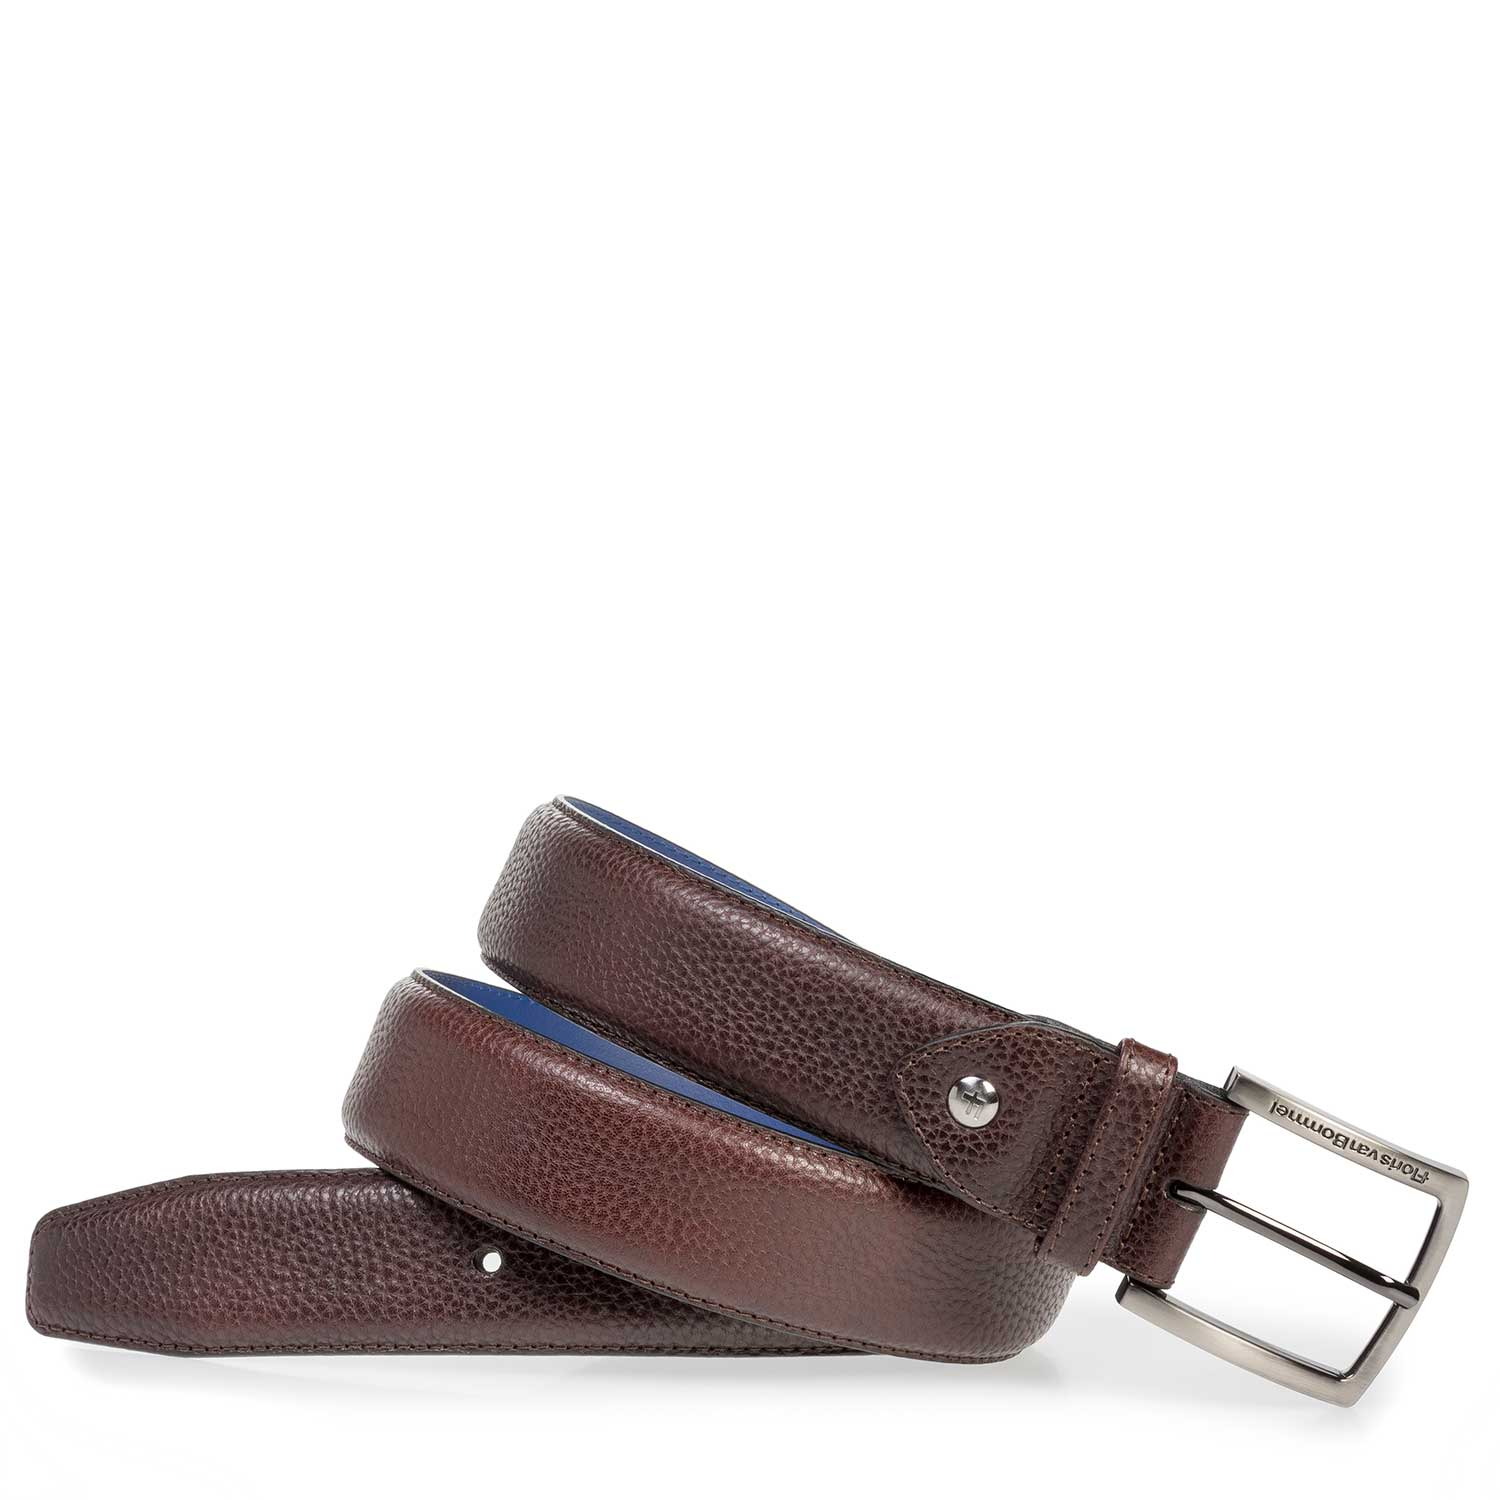 75202/12 - Dark brown leather belt with structure